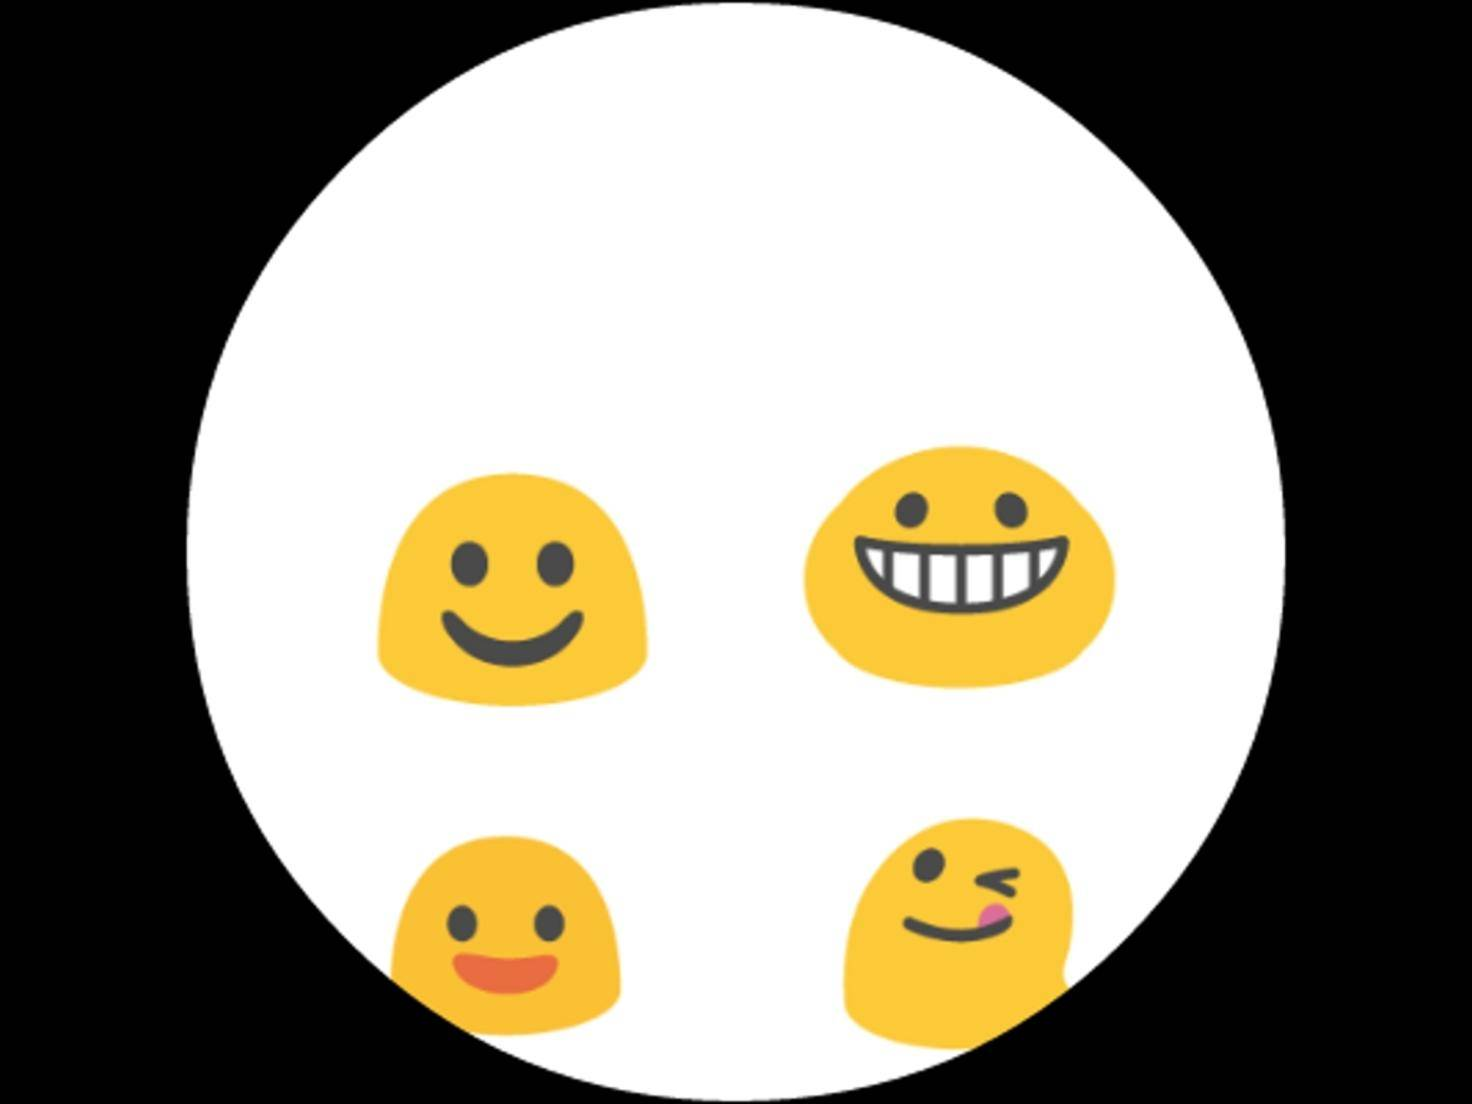 Android Wear Emojis